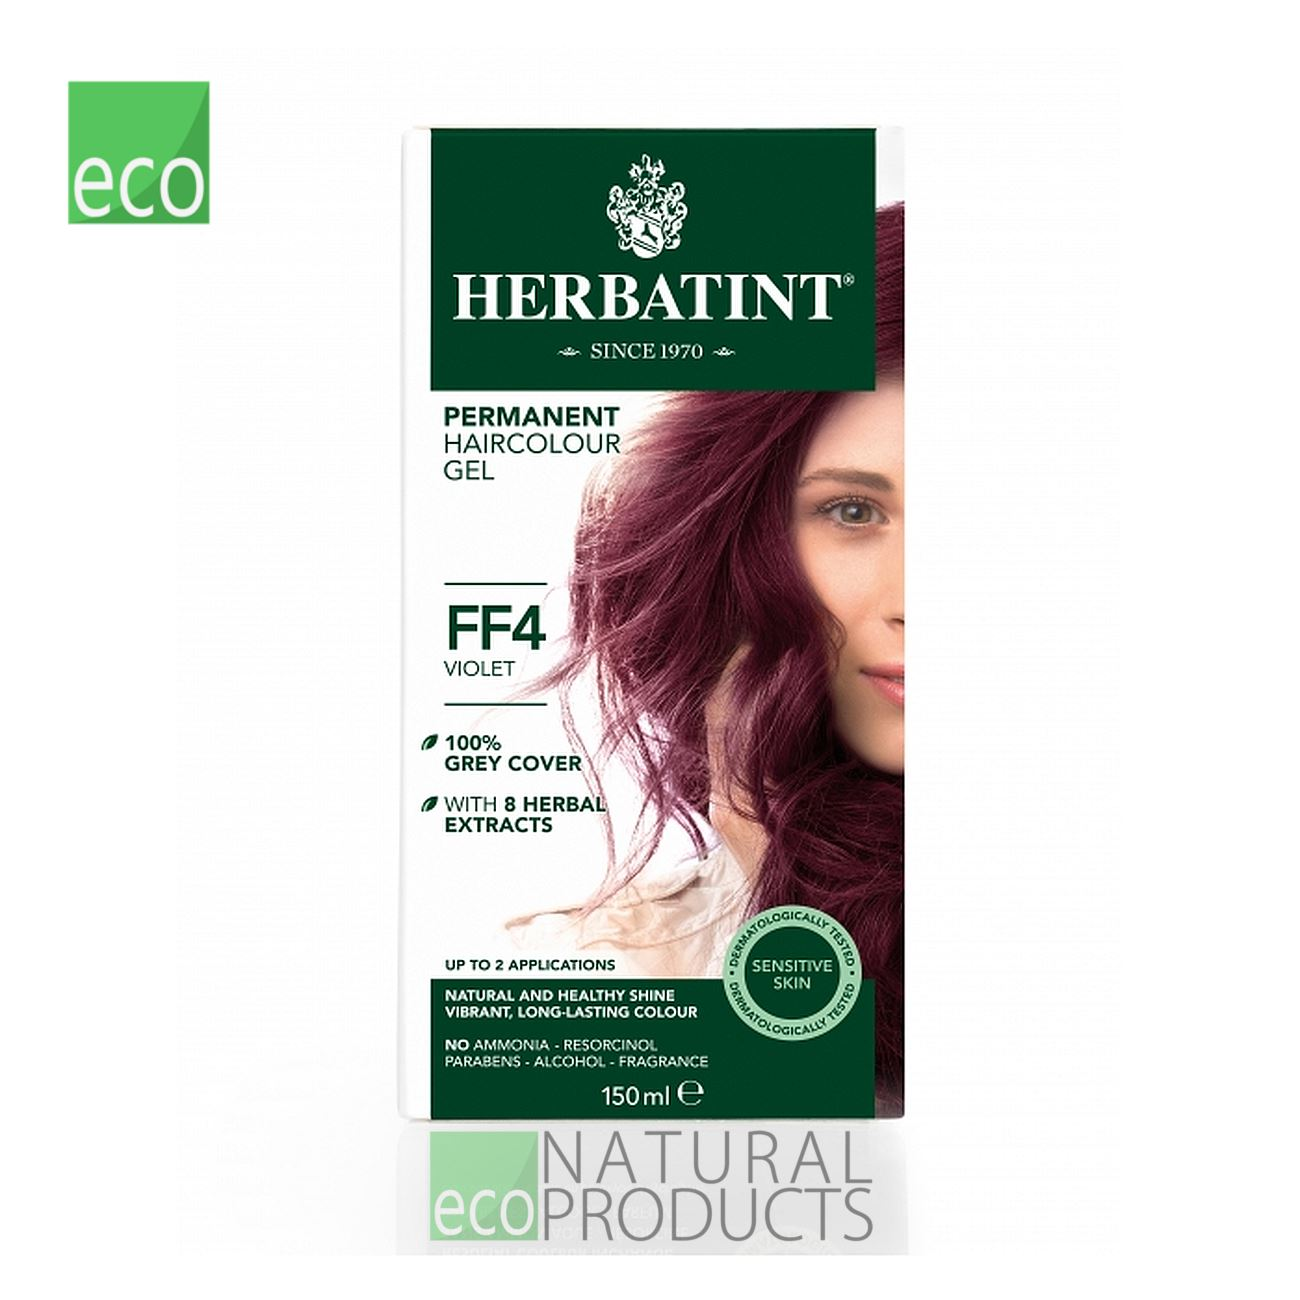 Herbatint Natural Hair Colour Violet FF4 150ml